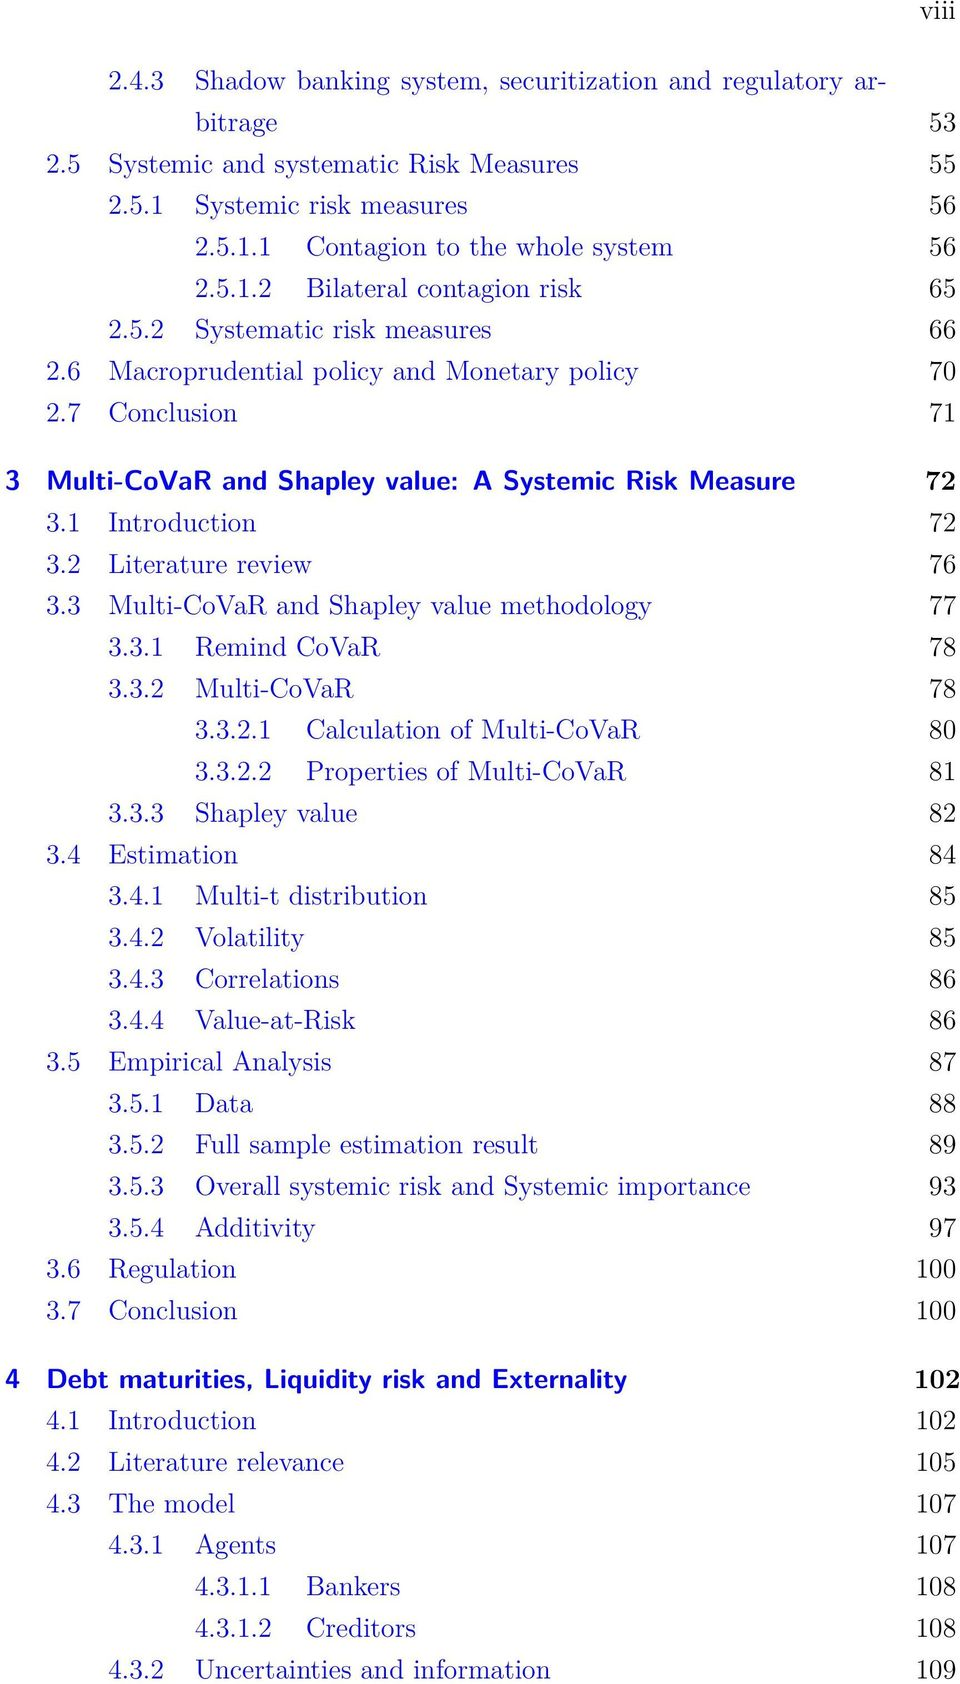 2 Literature review 76 3.3 Multi-CoVaR and Shapley value methodology 77 3.3.1 Remind CoVaR 78 3.3.2 Multi-CoVaR 78 3.3.2.1 Calculation of Multi-CoVaR 80 3.3.2.2 Properties of Multi-CoVaR 81 3.3.3 Shapley value 82 3.